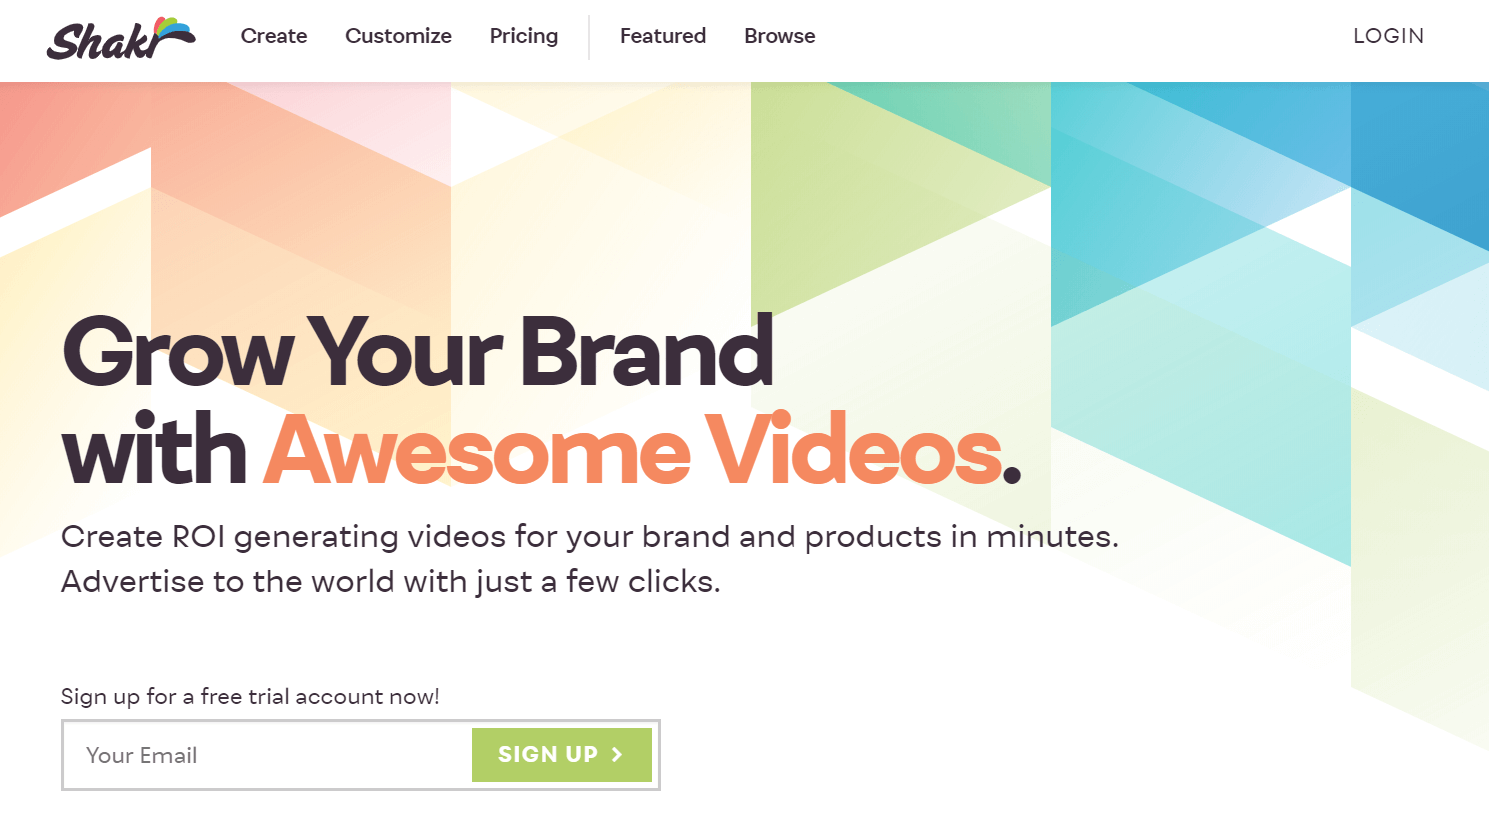 Shakr Video Marketing Tool